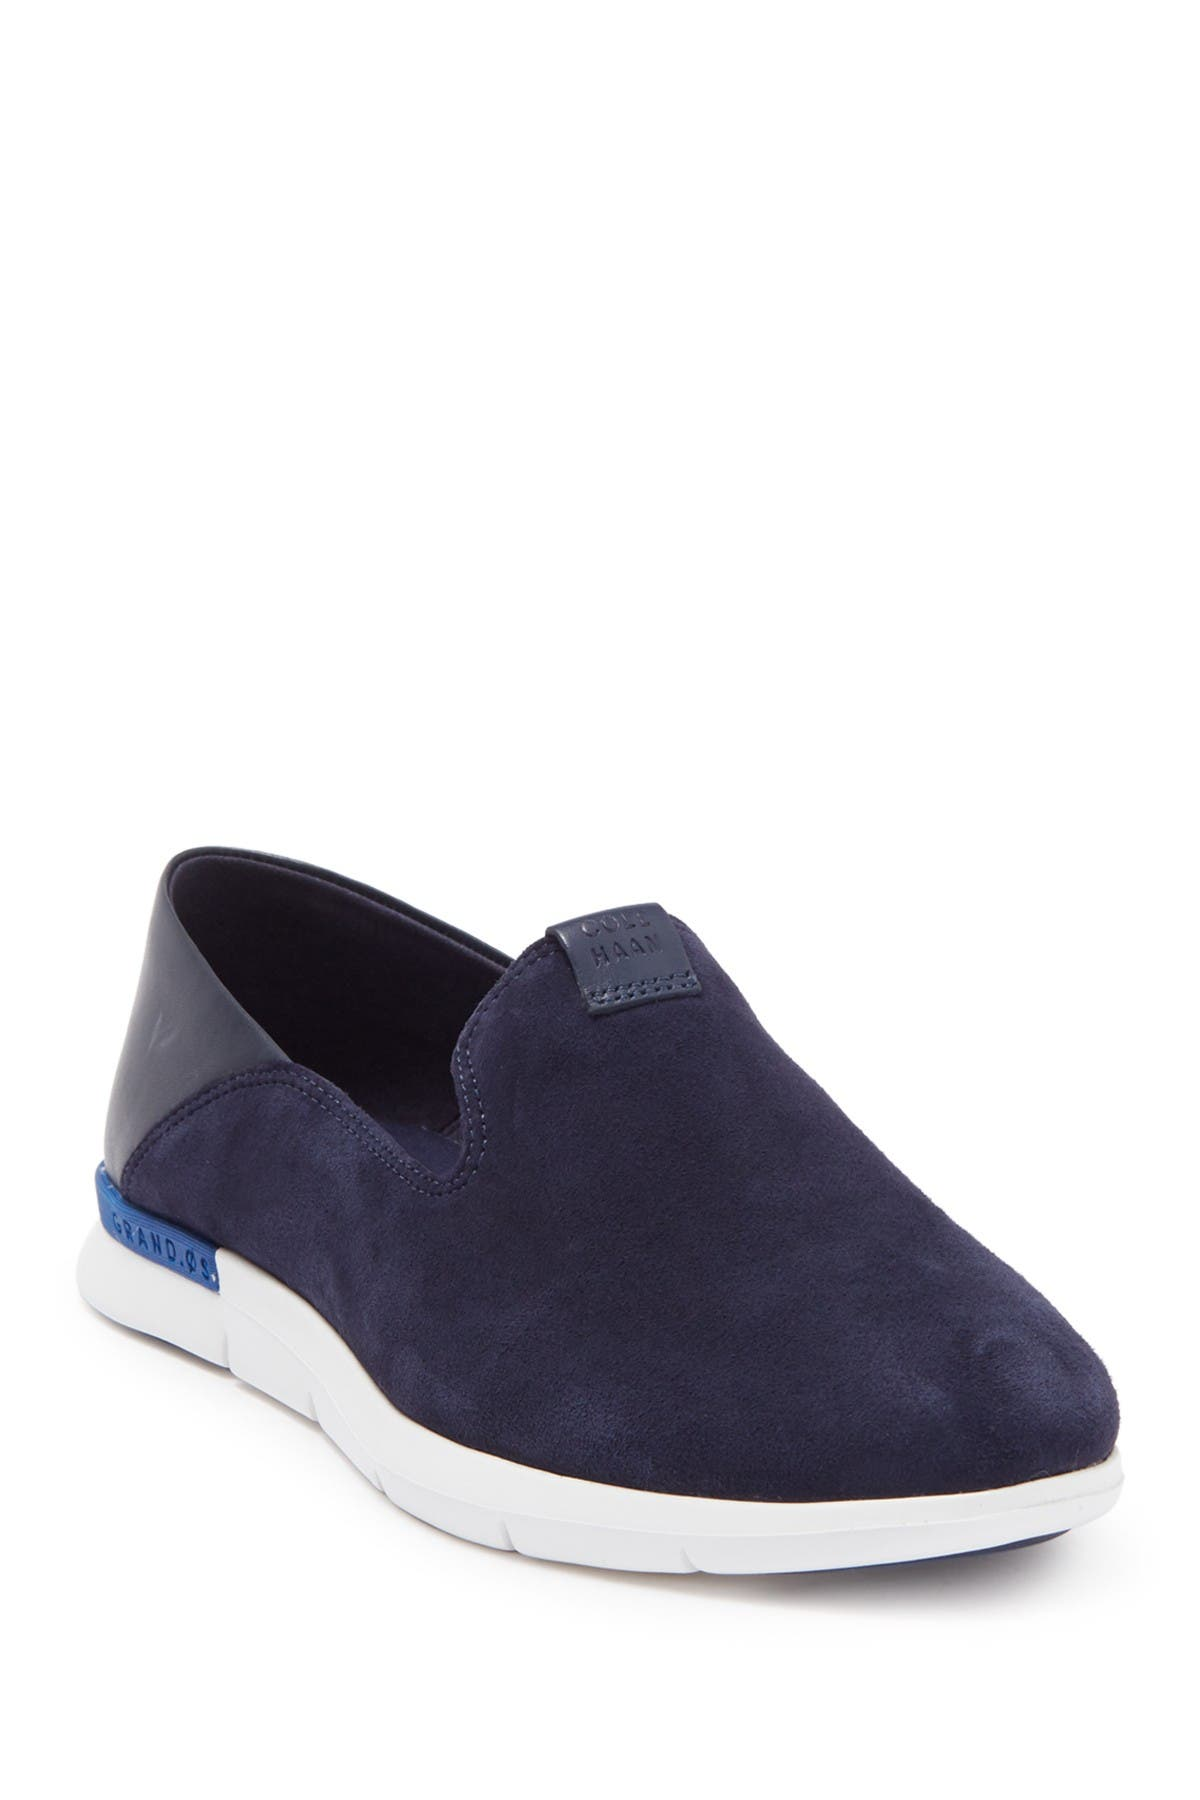 Image of Cole Haan Grand Horizon Sip-On Shoe